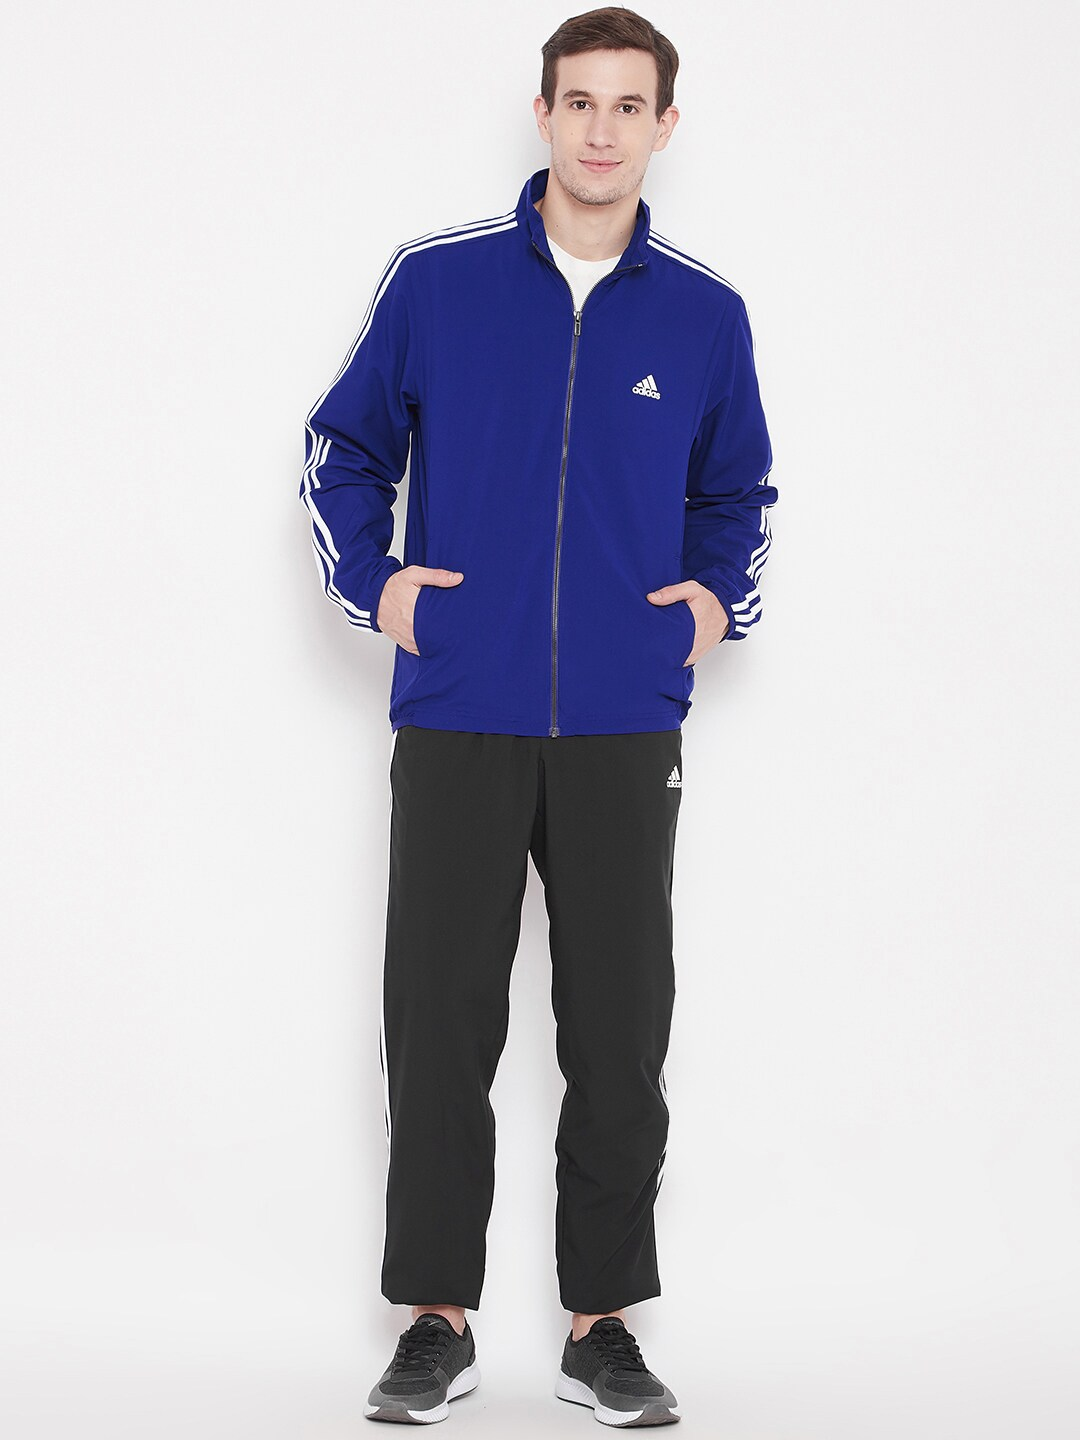 d4242edafe22 Adidas Campus Tracksuits - Buy Adidas Campus Tracksuits online in India